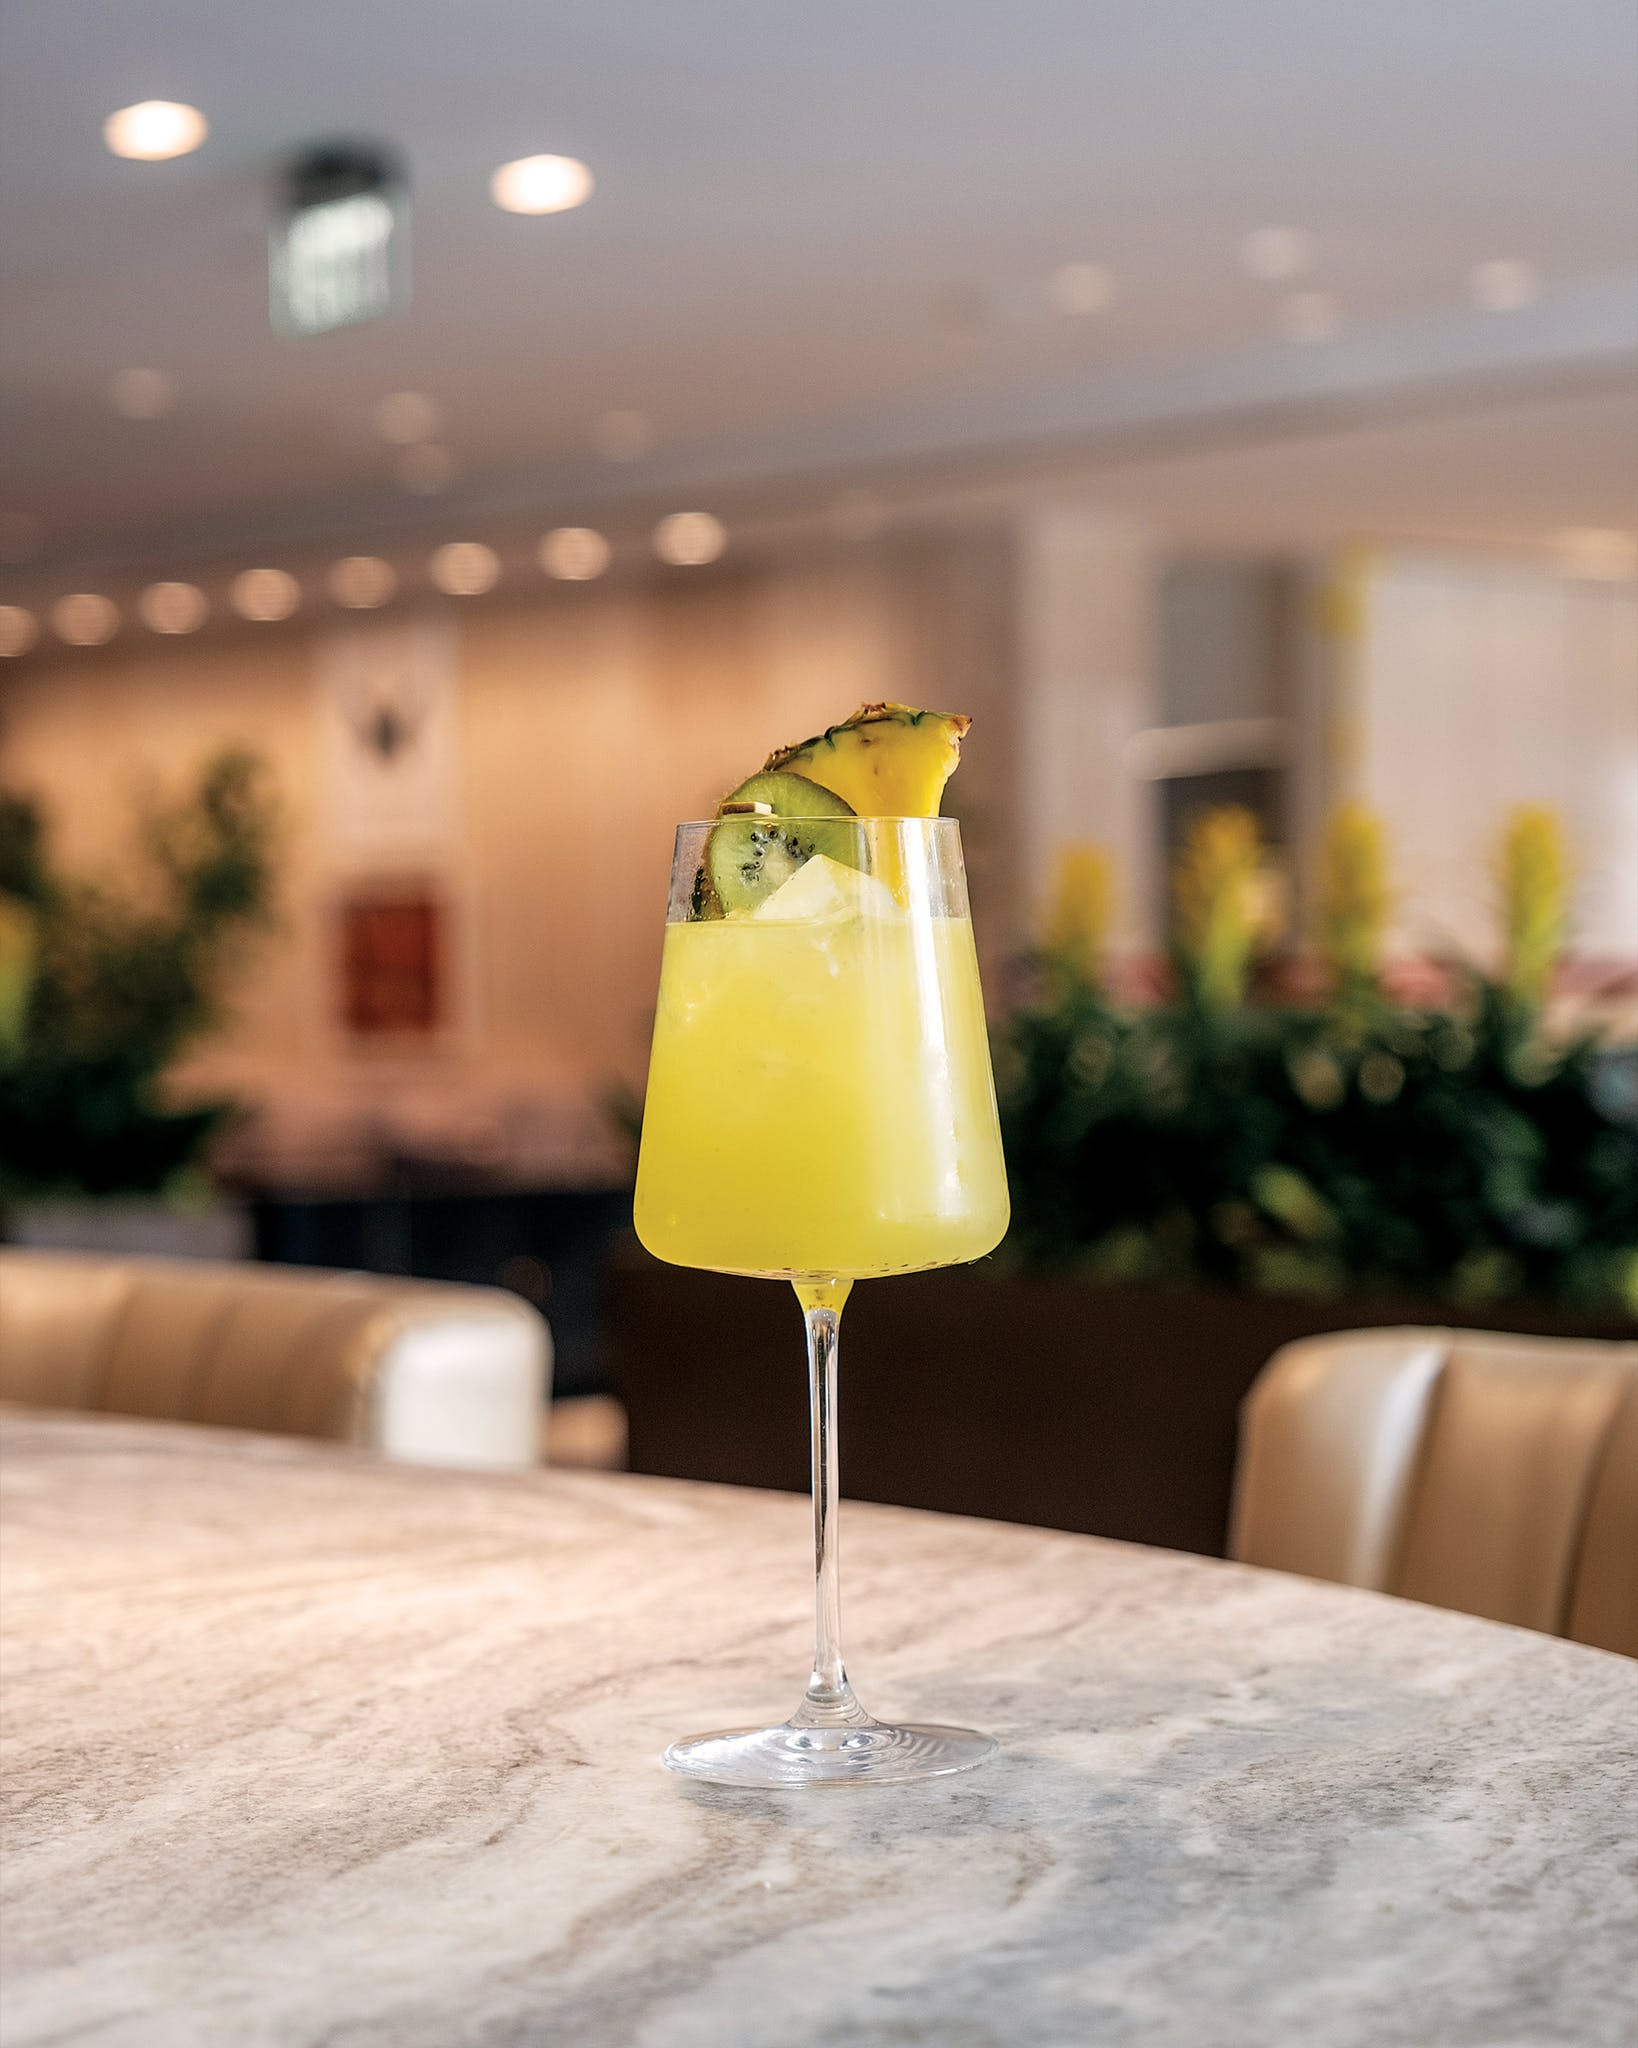 The Nine at the National restaurant opened this week with a menu that caters to professionals, including grab-and-go offerings and libations like this one—a kiwi and pineapple twist on the classic gin and tonic called Hello Sunshine.